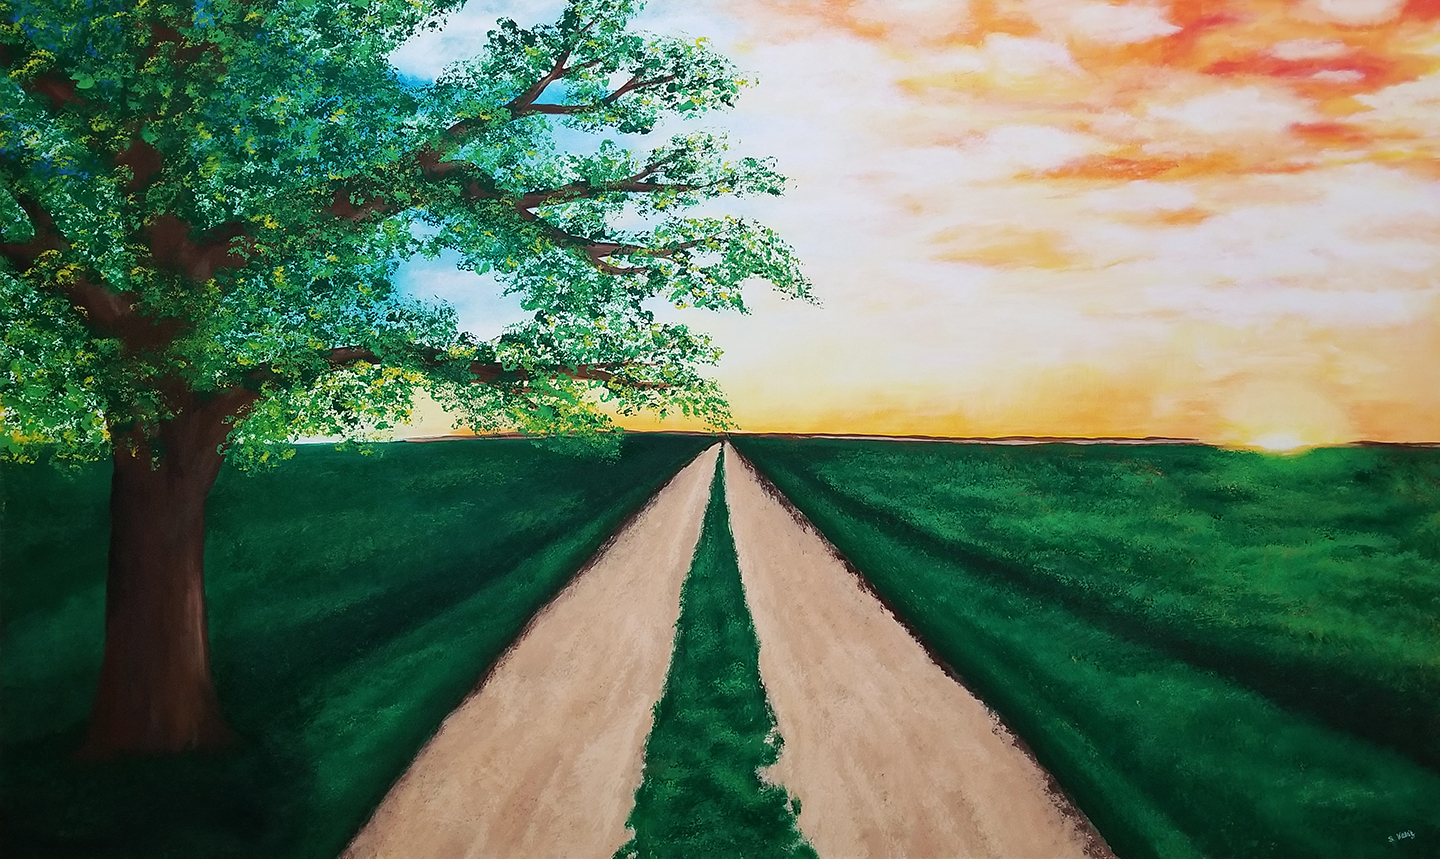 Open Road artwork by Stacey Wellnitz - art listed for sale on Artplode